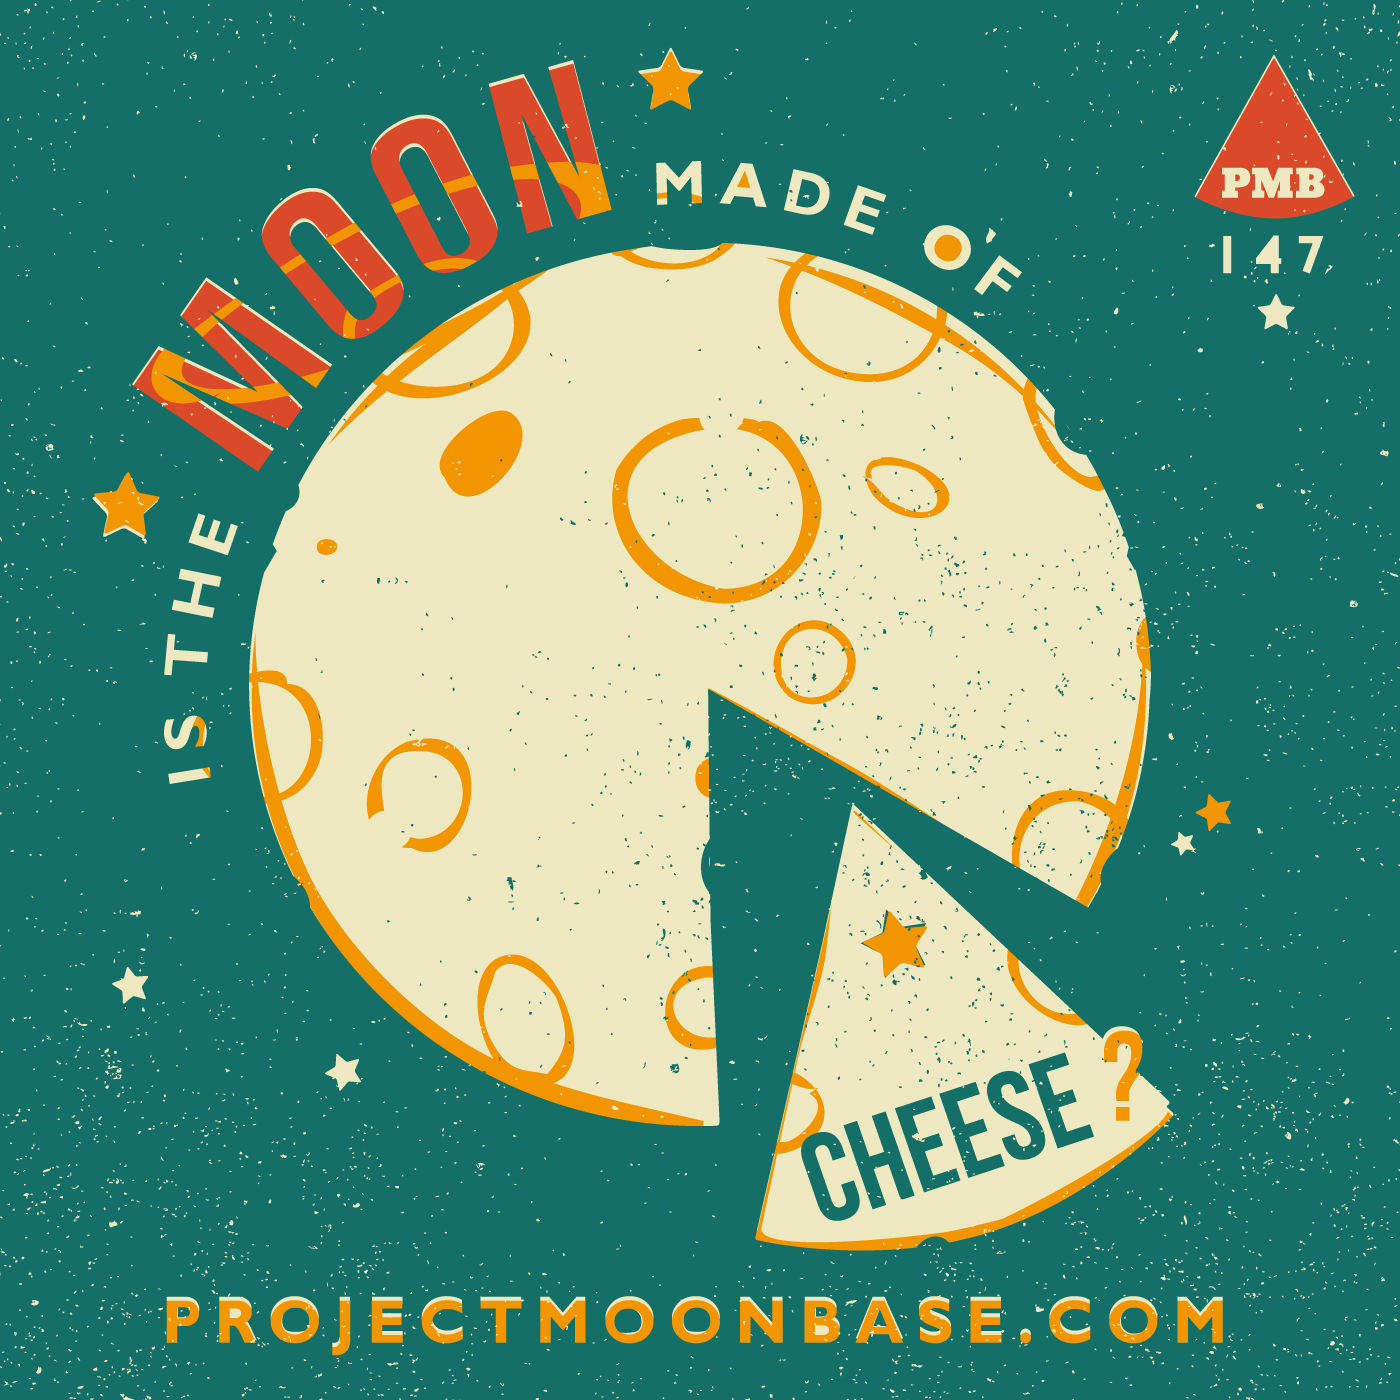 PMB147 Is The Moon Made of Cheese